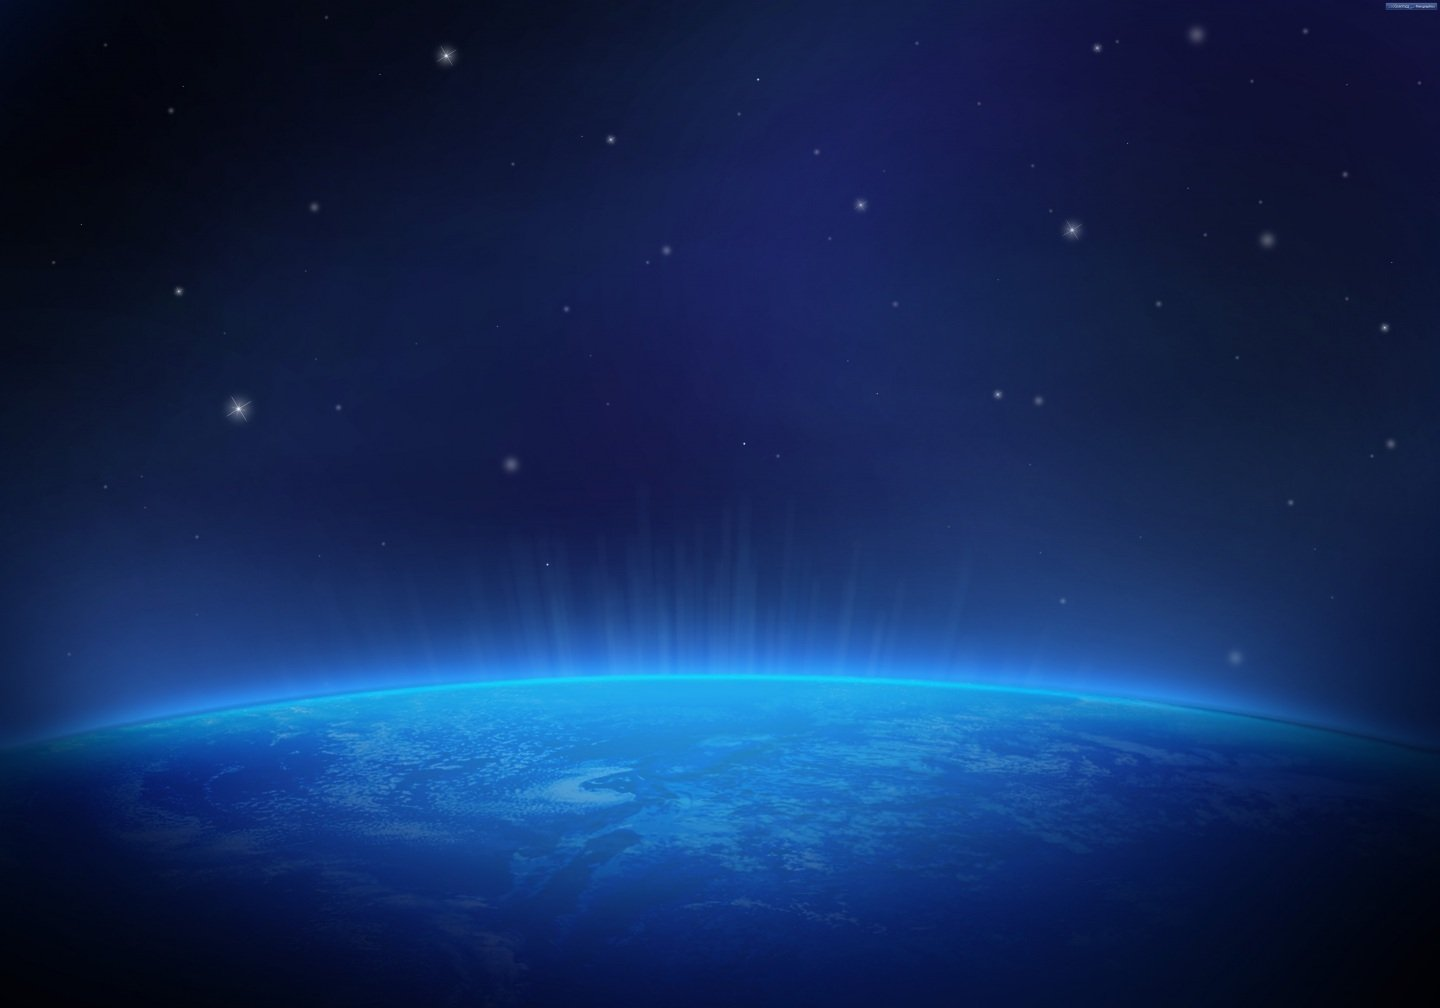 Planet Earth From Space Wallpaper: Earth From Space Wallpaper Widescreen